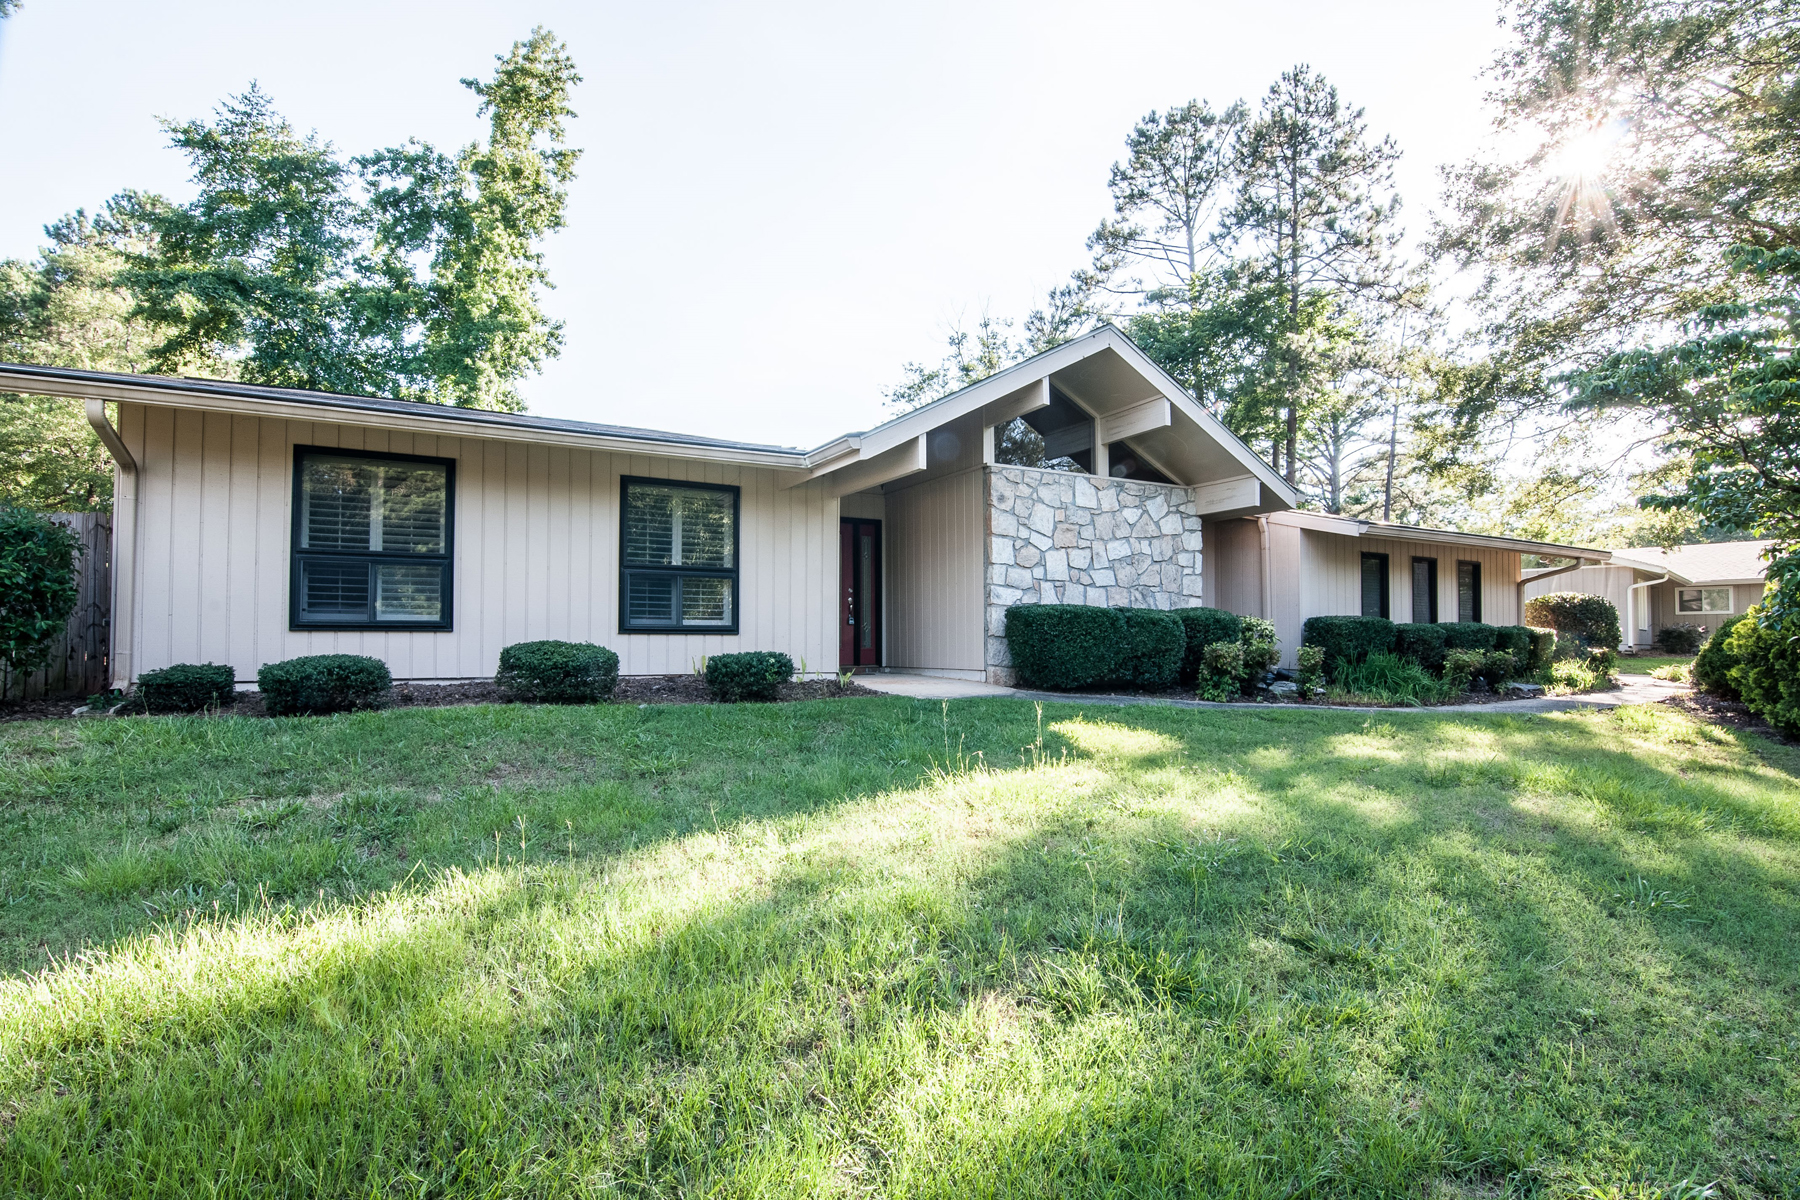 Single Family Home for Rent at Heart Of Peachtree City - Utilities Included 207 Waterwood Bend Peachtree City, Georgia 30269 United States